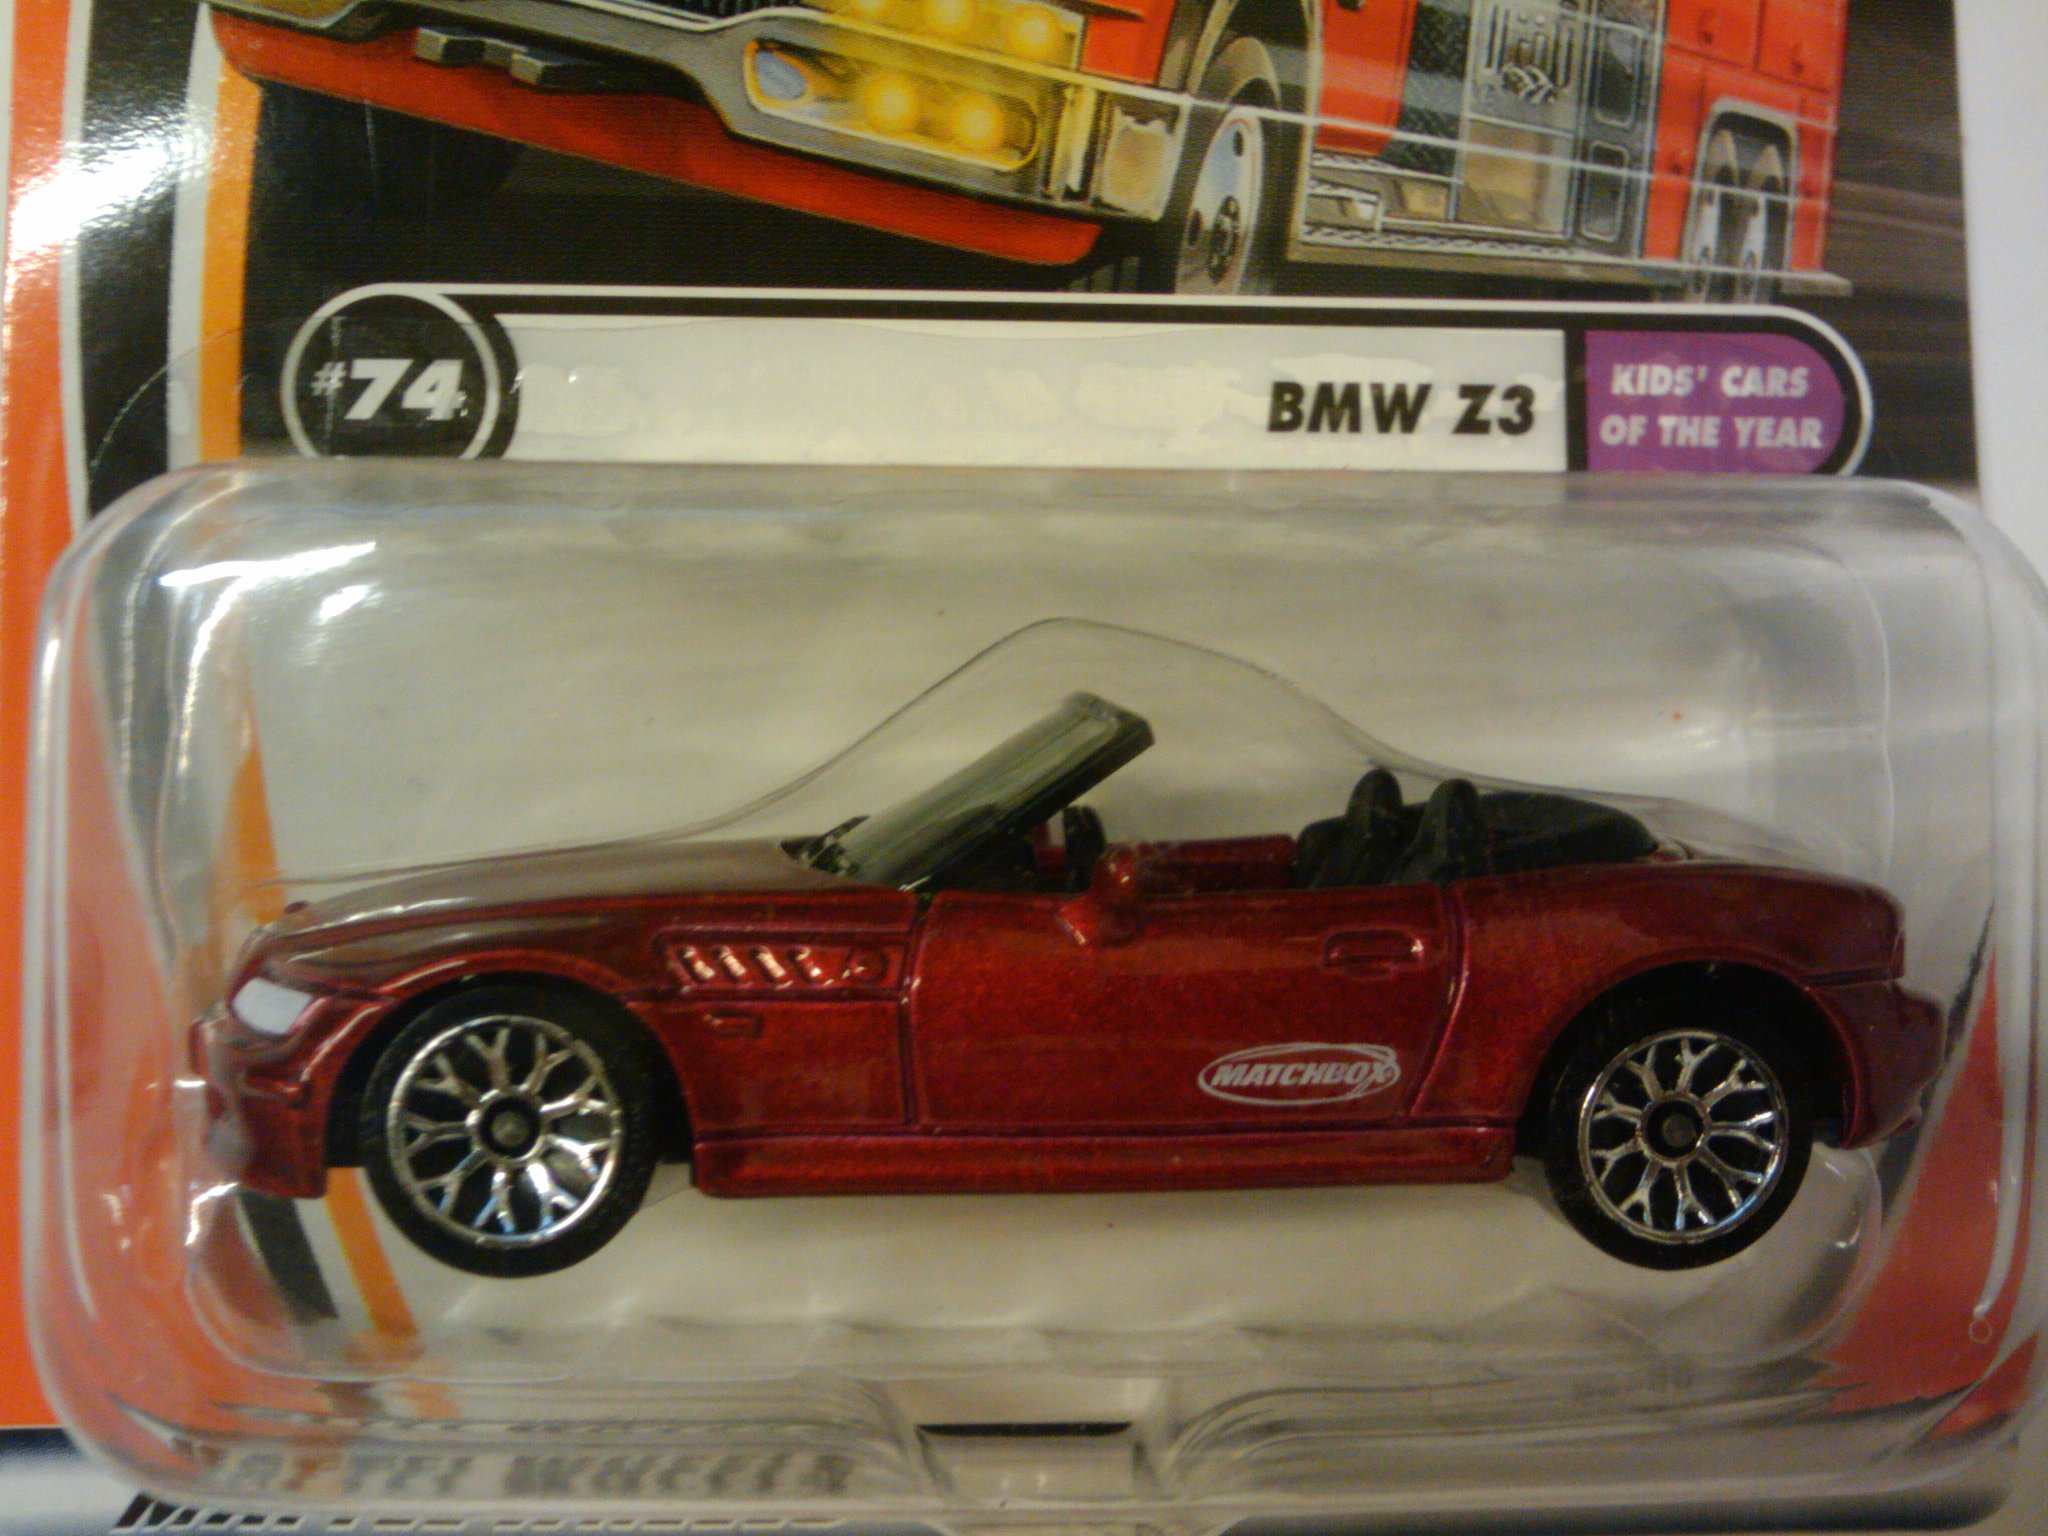 File:Kids Cars of the Year BMW Z3.jpg